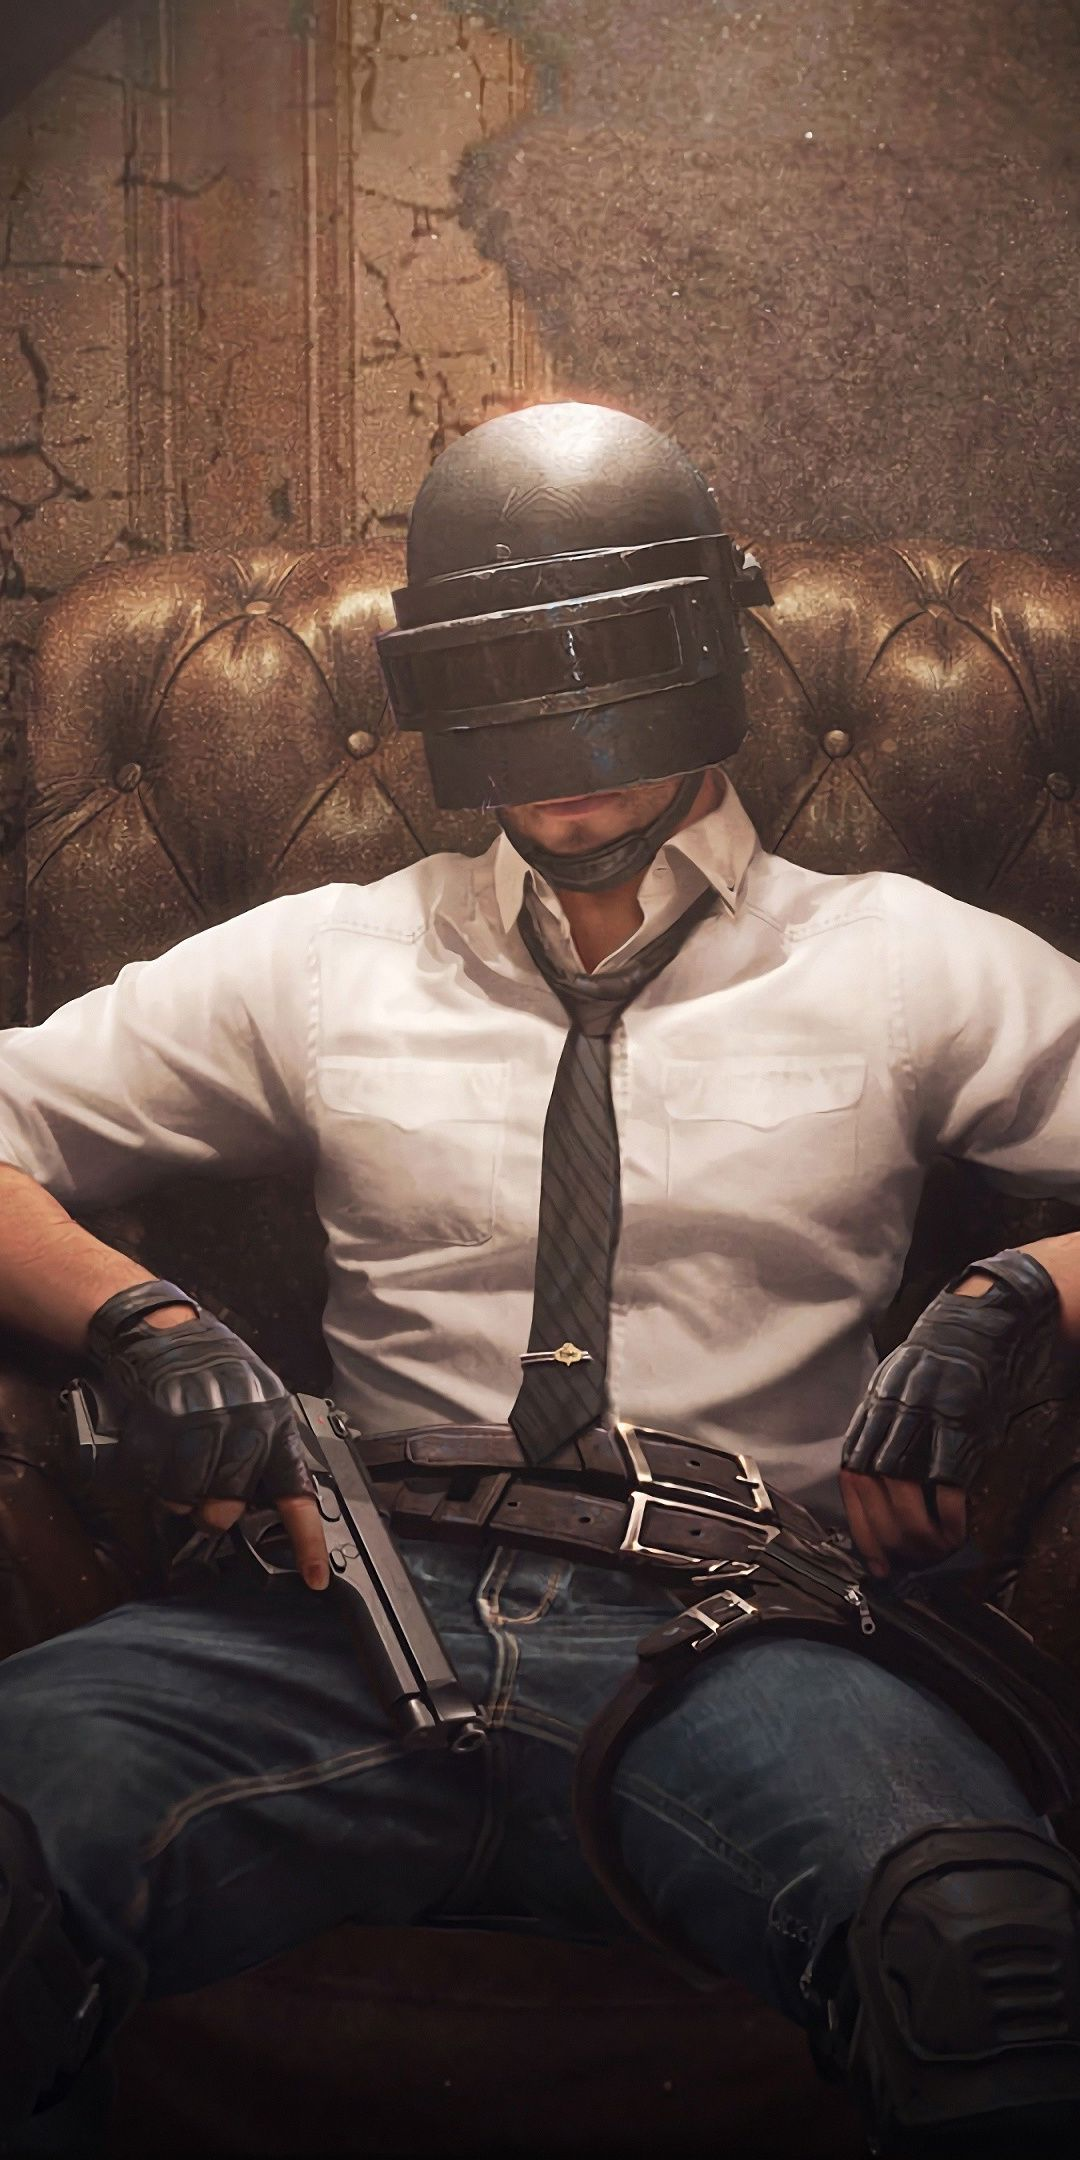 PUBG, PlayerUnknown's Battlegrounds, helmet guy as Boss